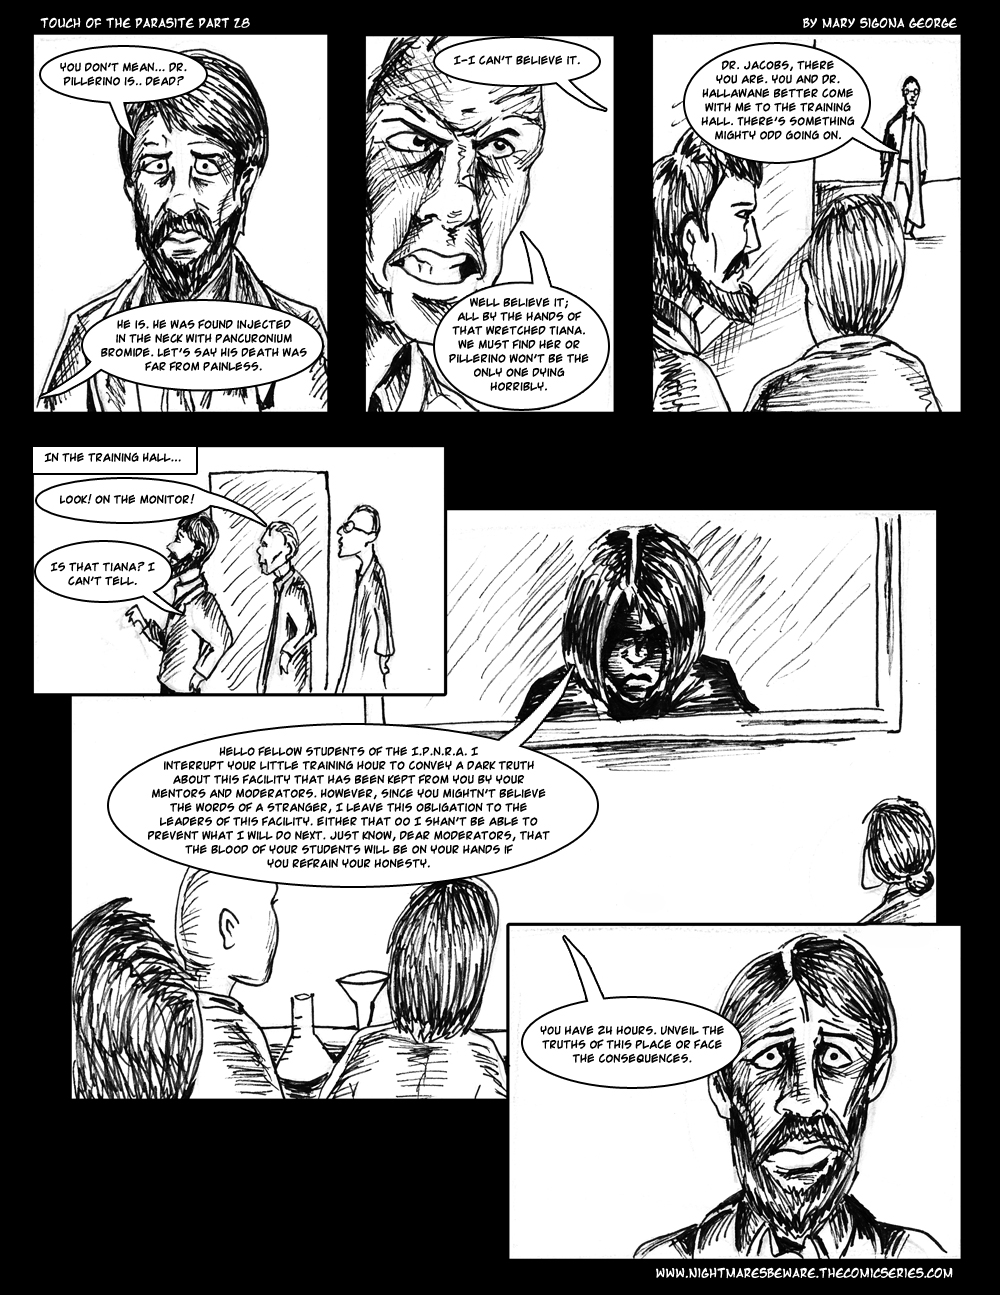 Touch of the Parasite: Part 28